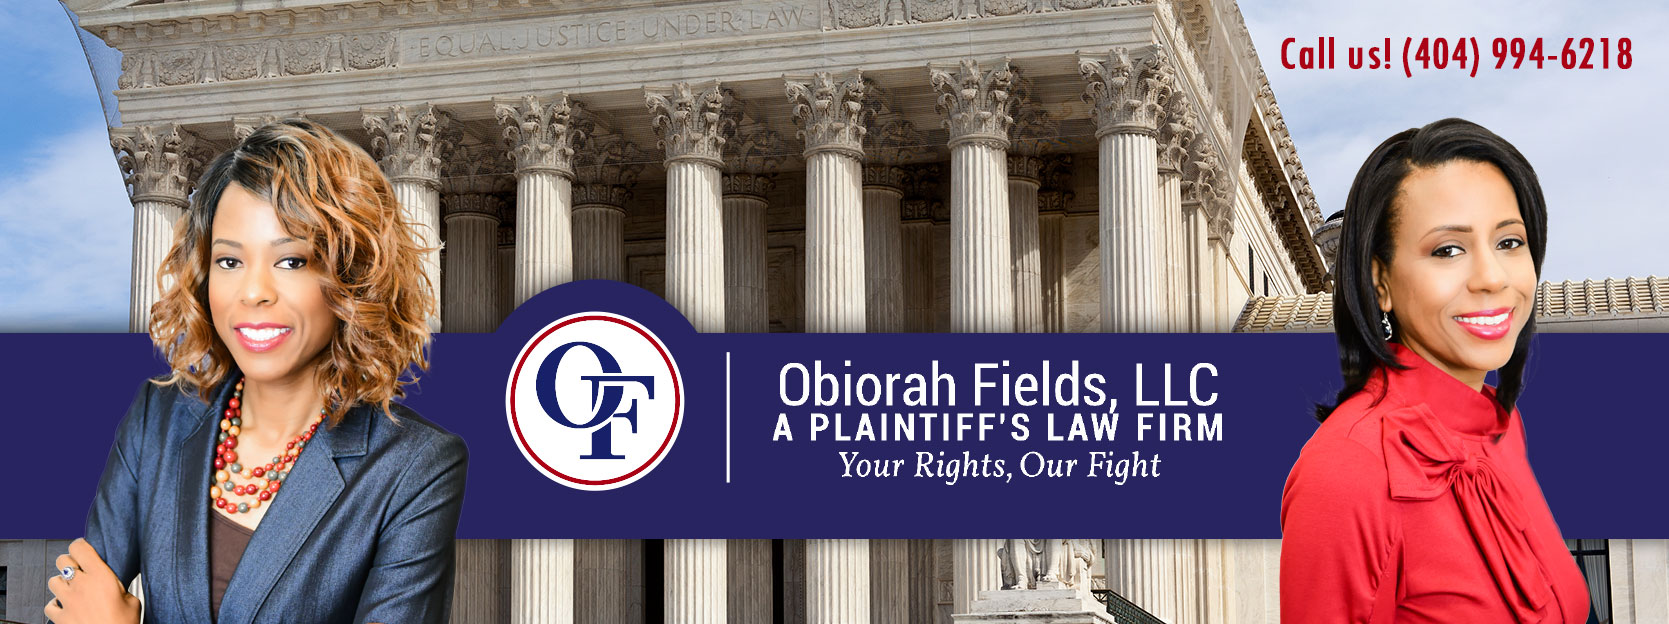 Obiorah Fields, LLC  Law Firm - Black Owned